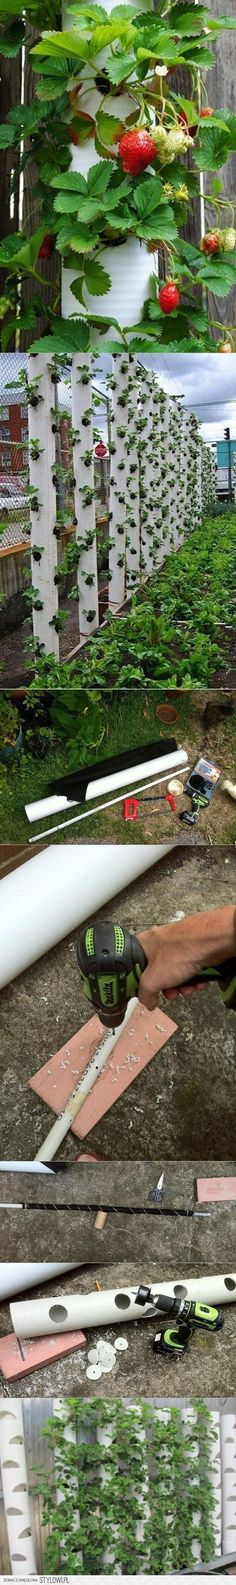 DIY Verticle PVC Pipe Strawberry Planter Tower | www.Fa… na Stylowi.pl #verticaltowergarden